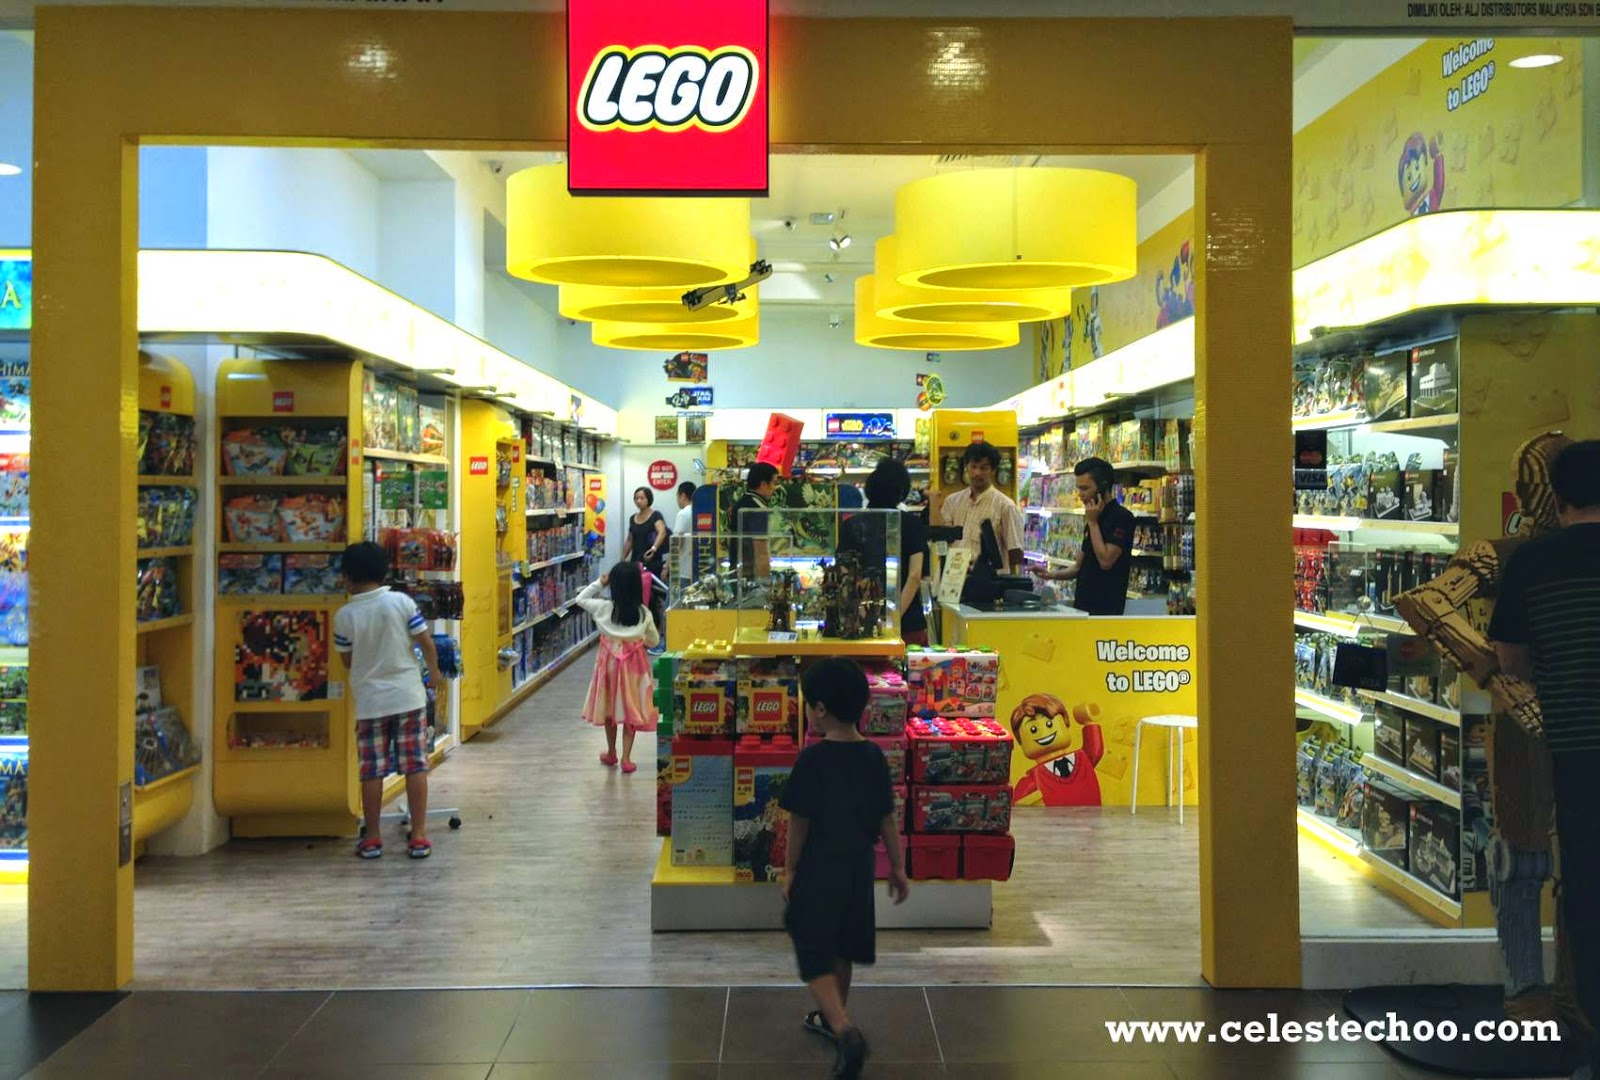 A store with room for playing The LEGO Store is situated at Vimmelskaftet 37, on the famous pedestrian street Strøget. It is arranged in three main areas: The